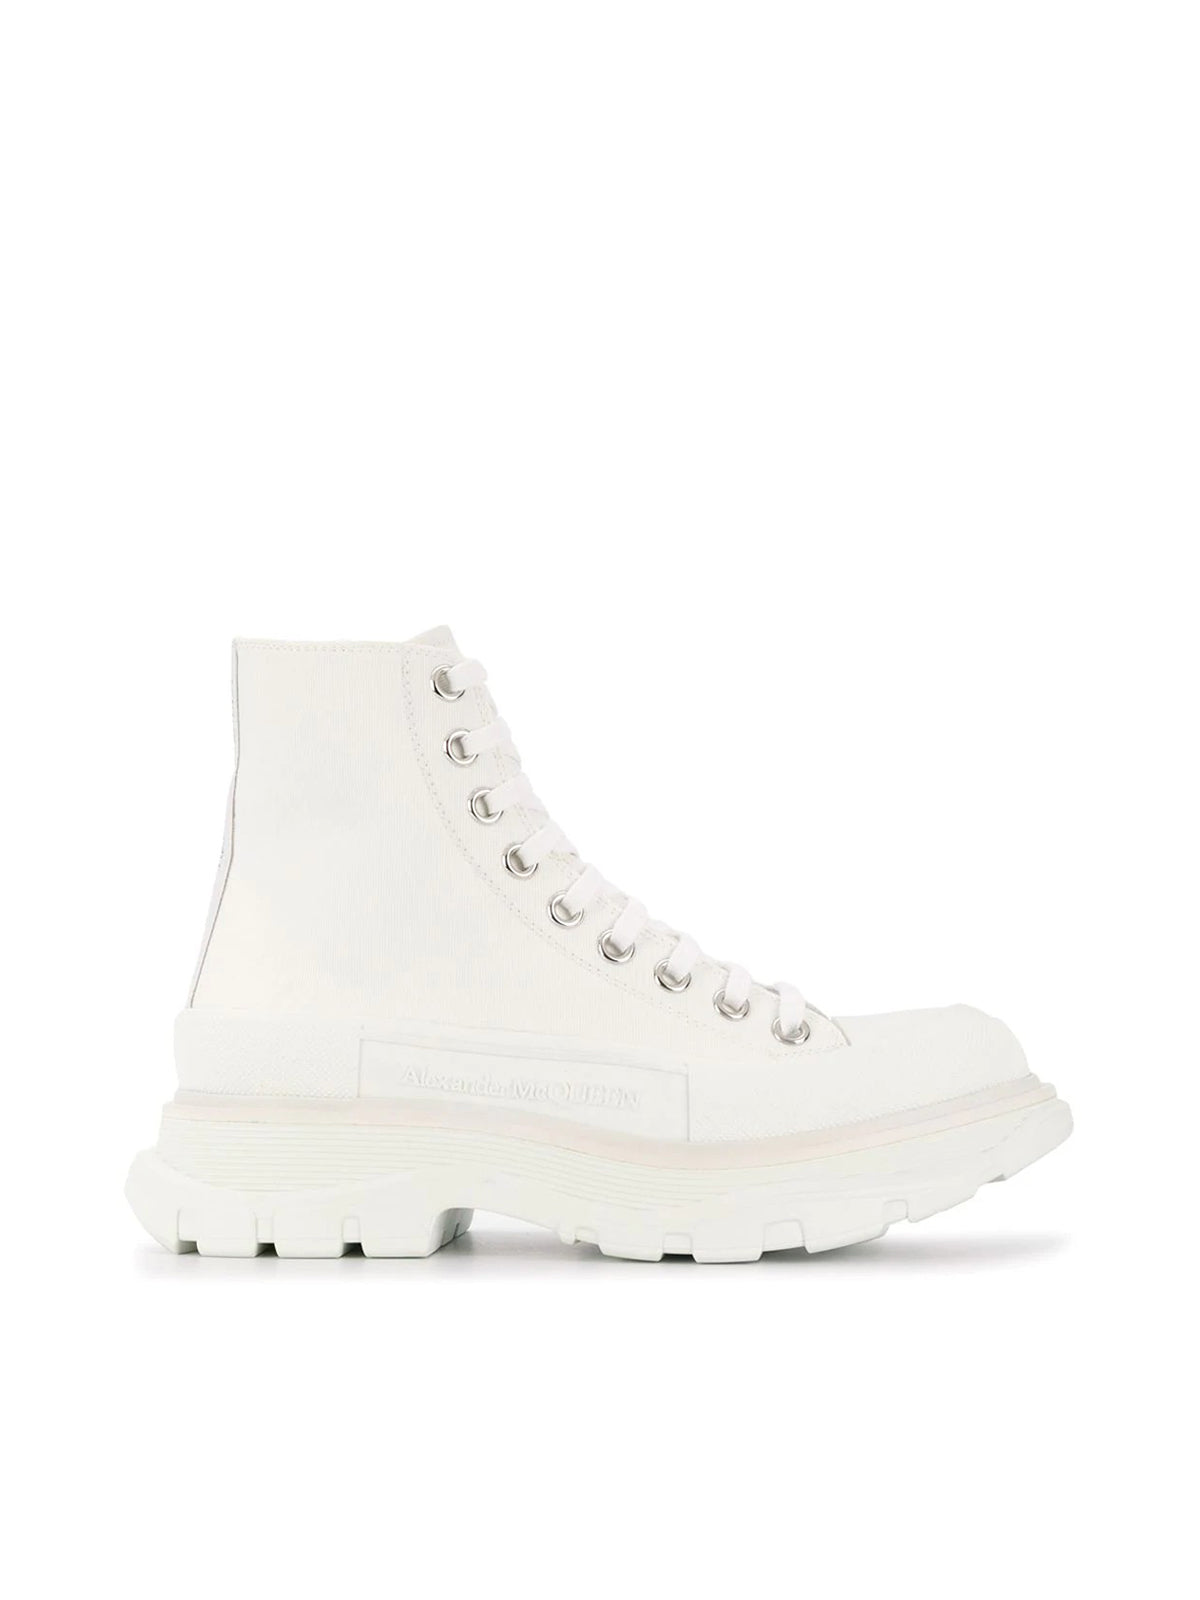 Tread Slick canvas boots